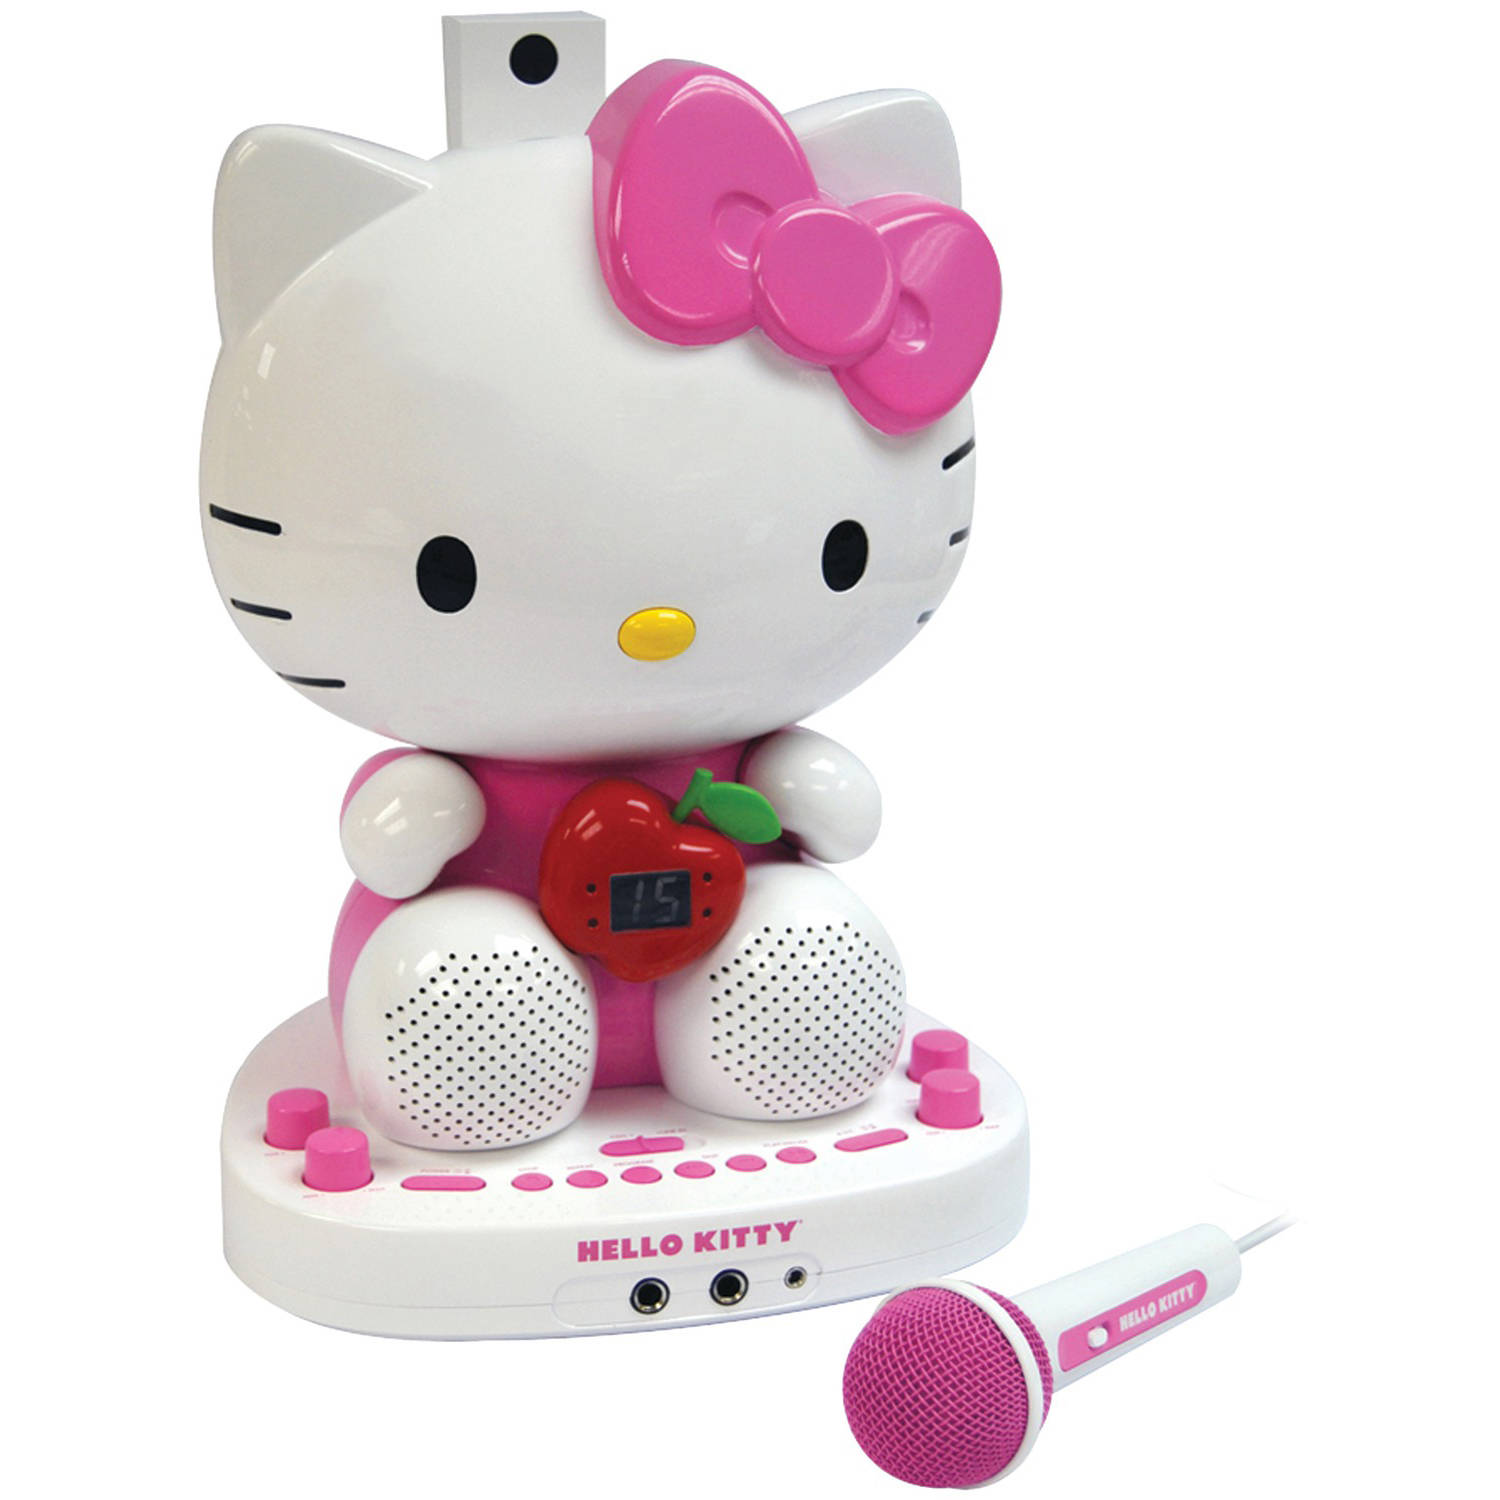 Hello Kitty KT2007 Karaoke System with Built-In Video Camera